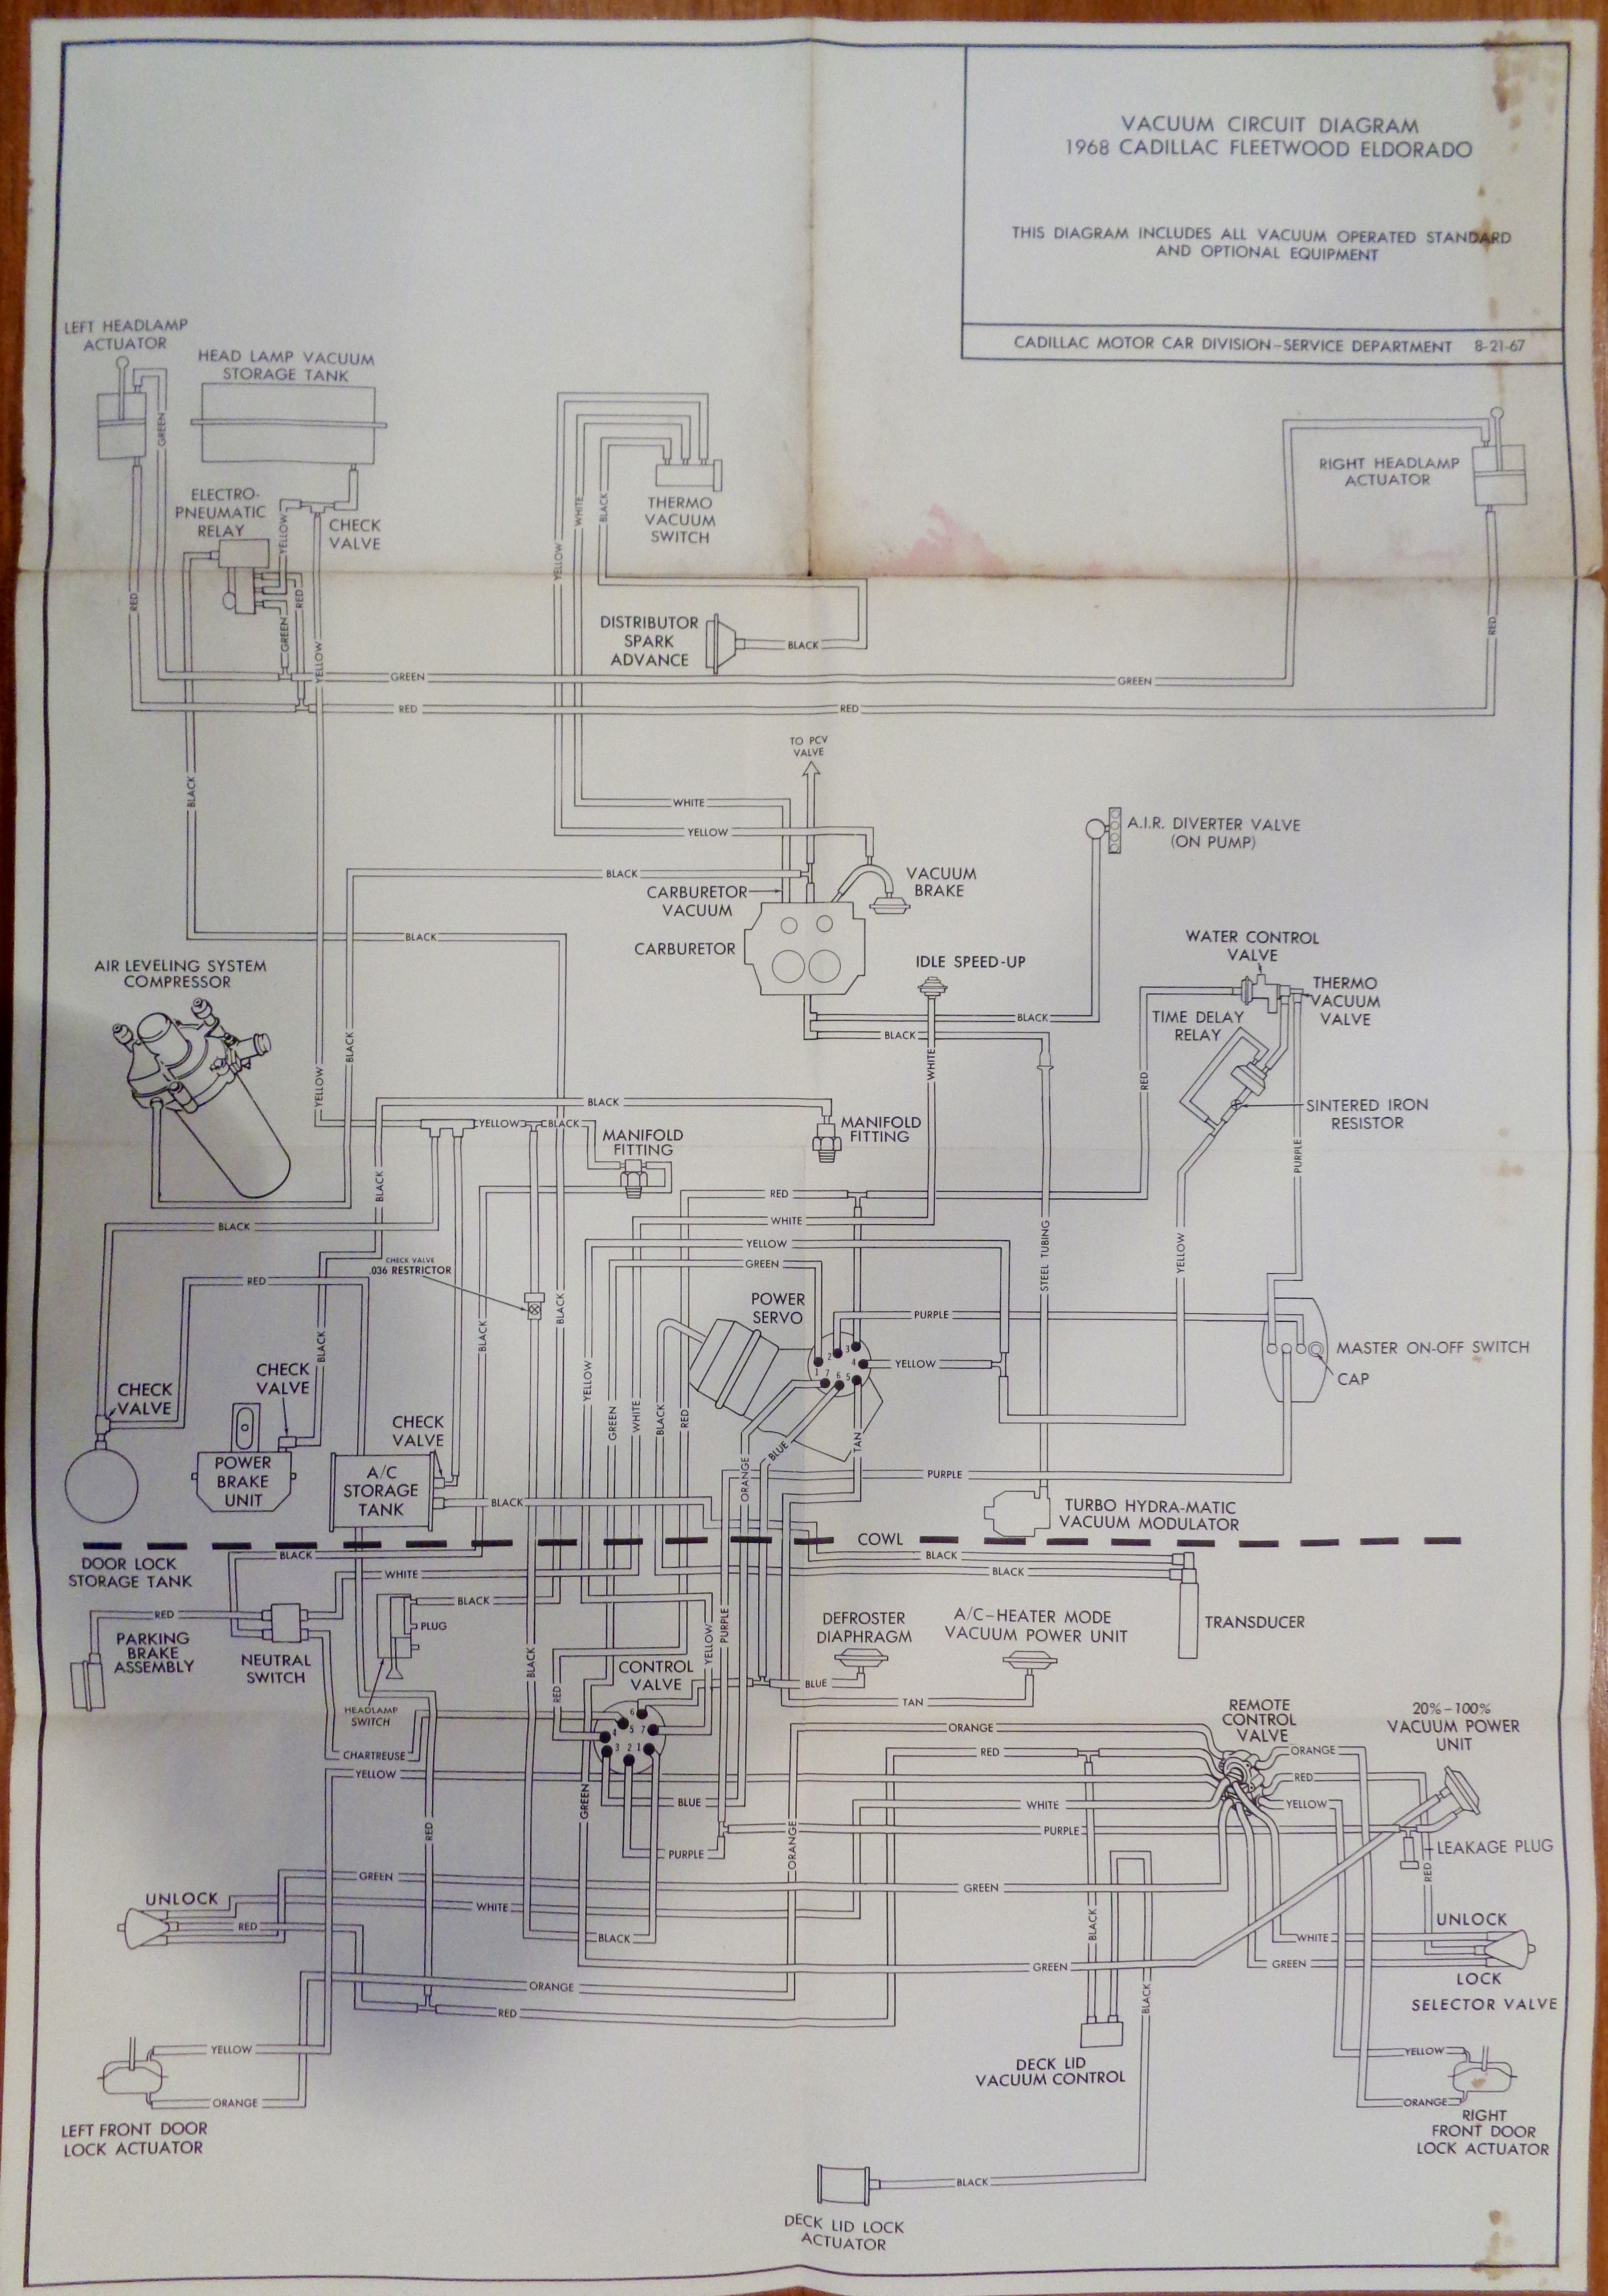 1968 Cadillac Fleetwood Eldorado Vacuum Circuit Diagram Cars Diverter Schematic